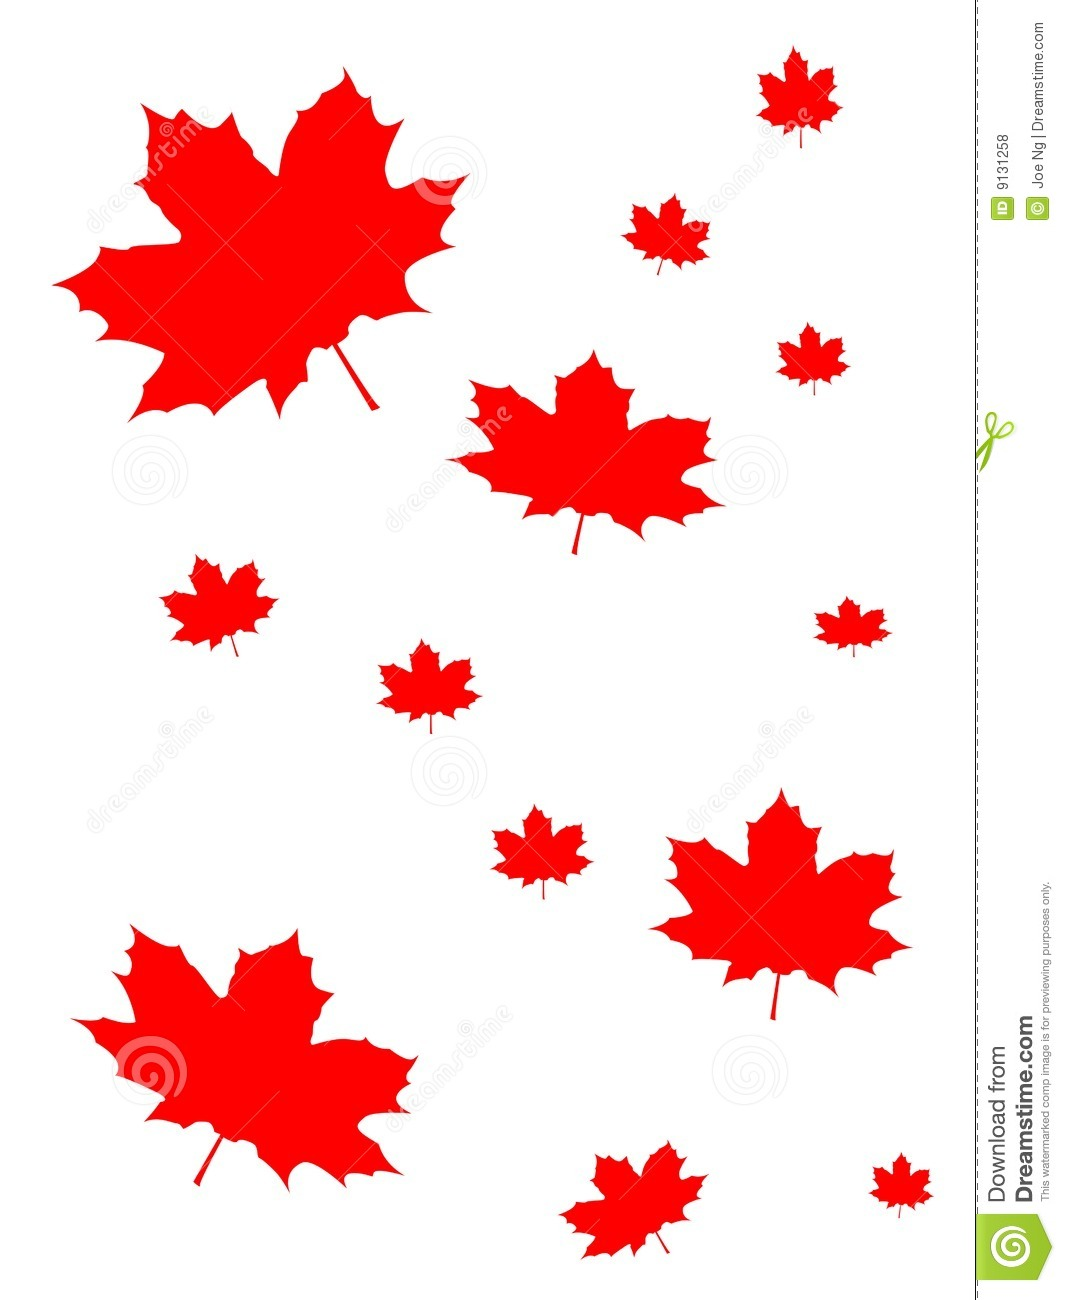 image united states map outline with Royalty Free Stock Photos Canada Maple Leaf Background Image9131258 on Where Is Zadar besides Afghreg in addition Dcpublichealth also Stock Illustration Medicine Background Nurse Medical Lab Equipments Vector Illustration Outline Style Image56824991 furthermore Free South Carolina State Outline Map.